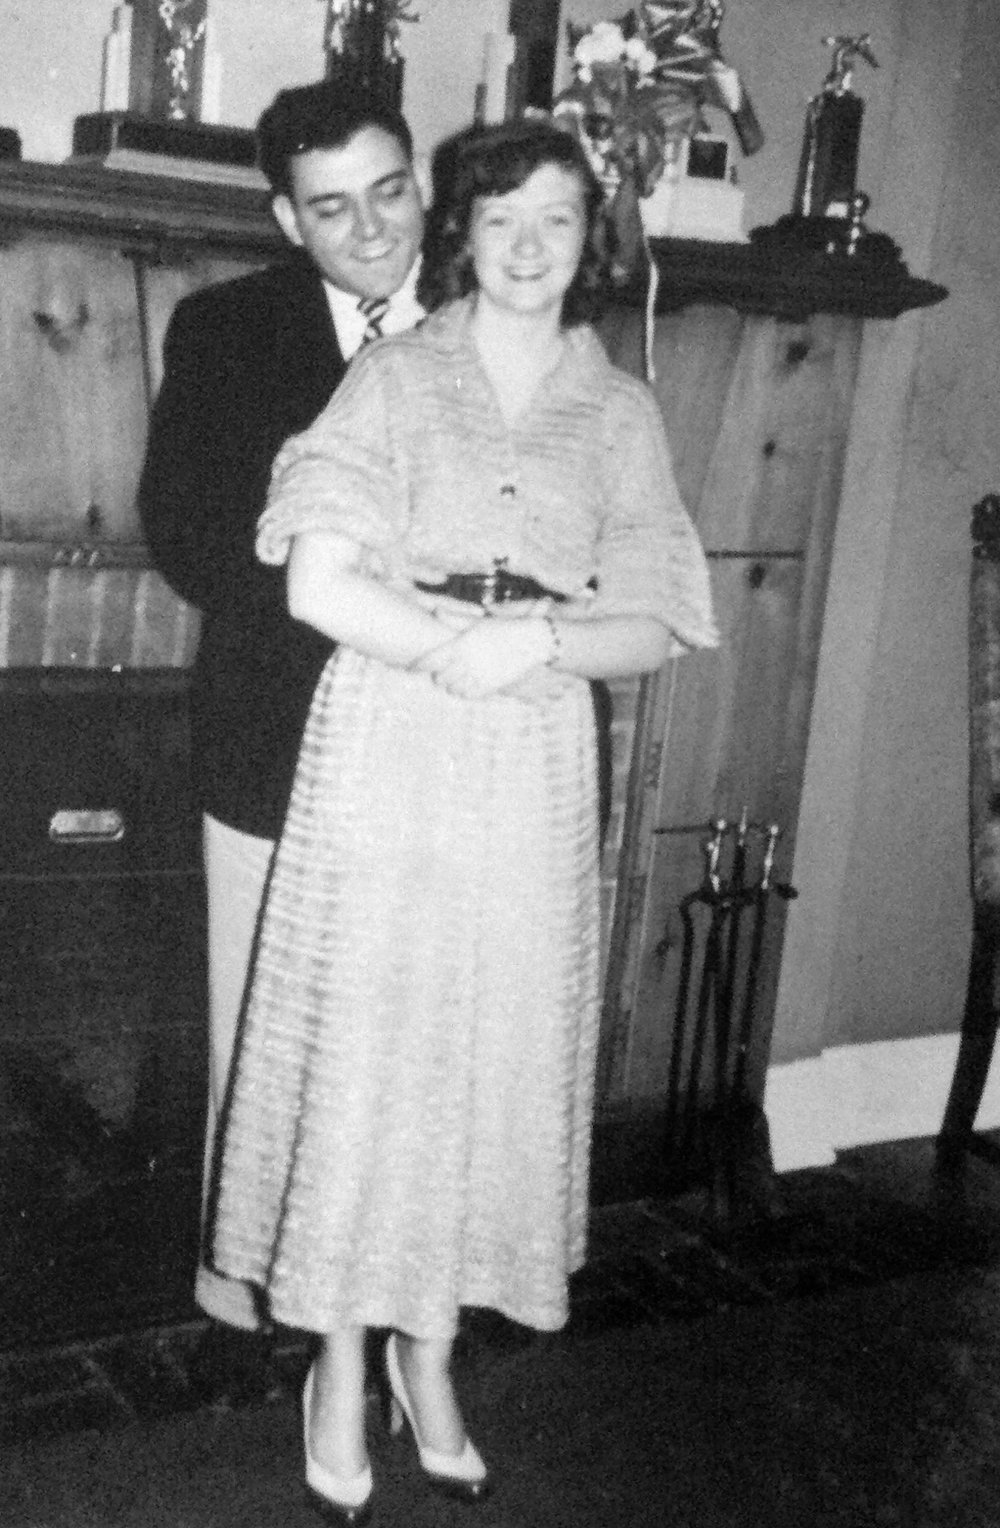 Mr. and Mrs. Elmore - 1952